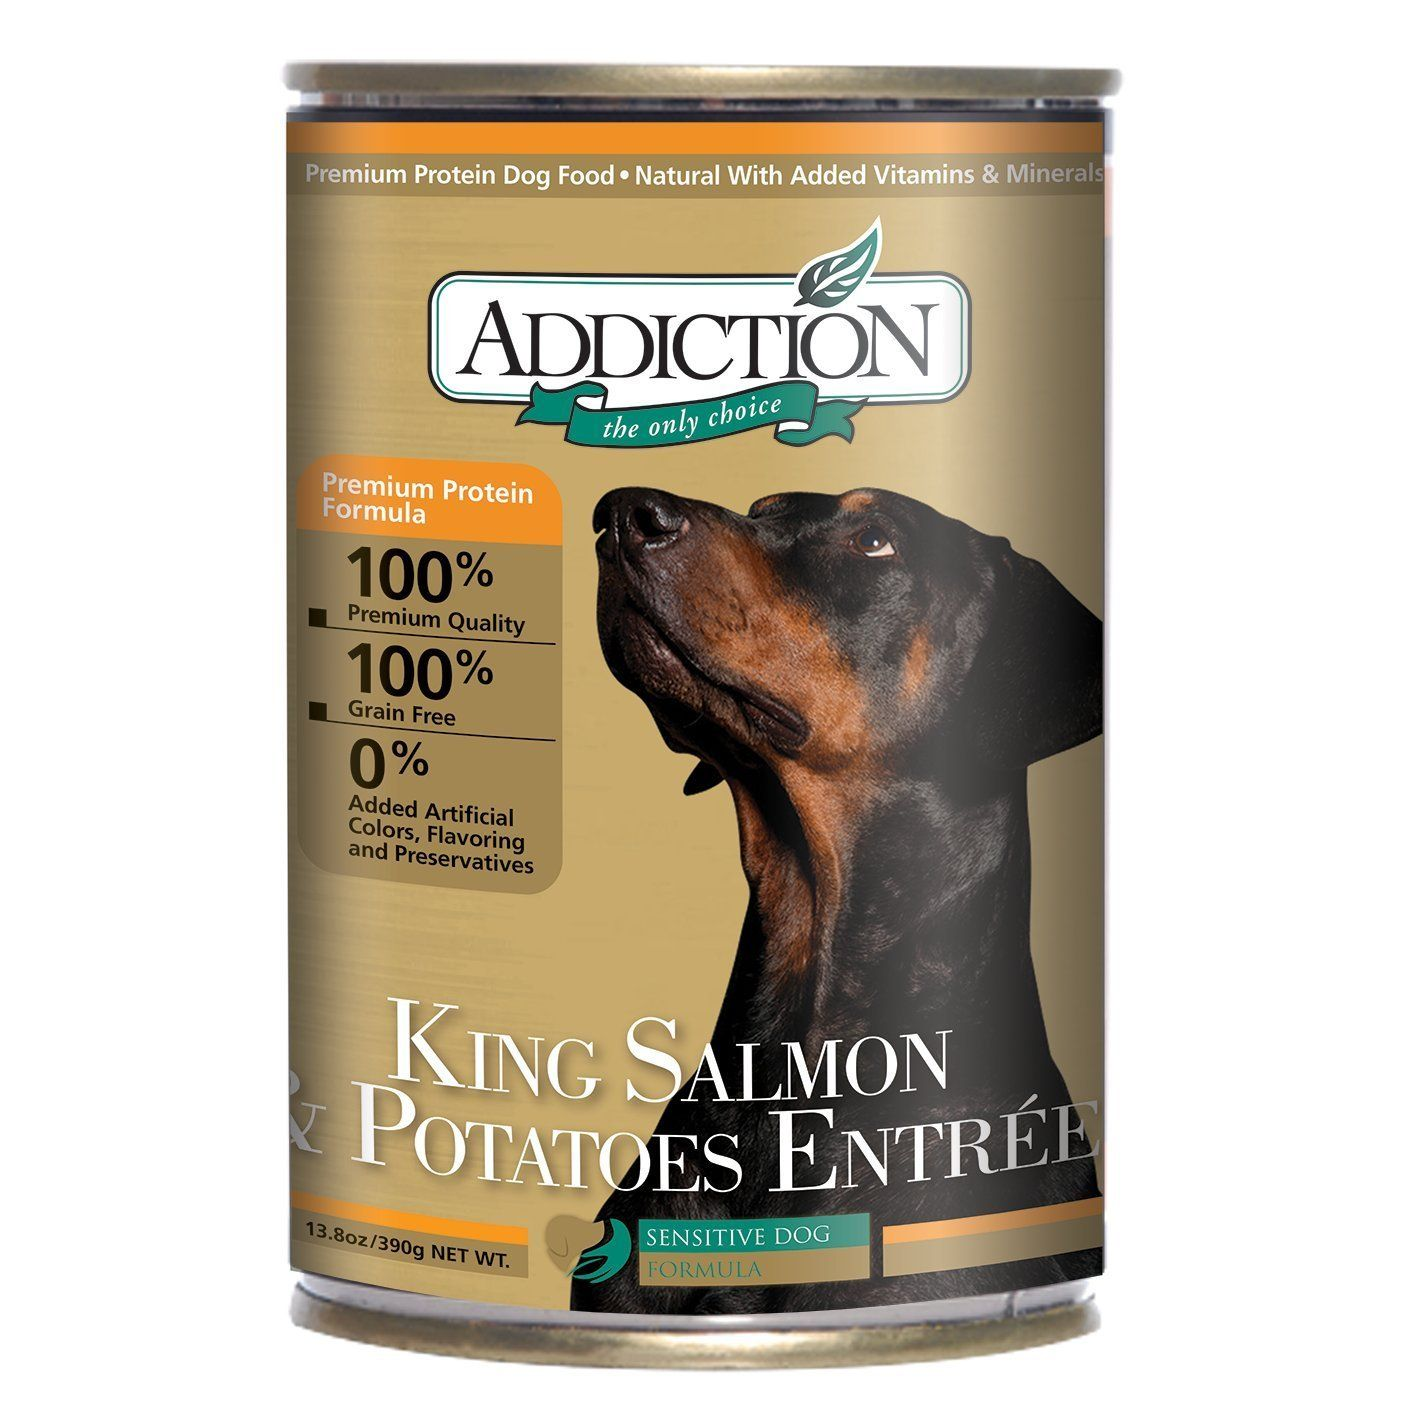 King Salmon And Potatoes Entra C E Dog Food 12 13 8 Ounce Cans